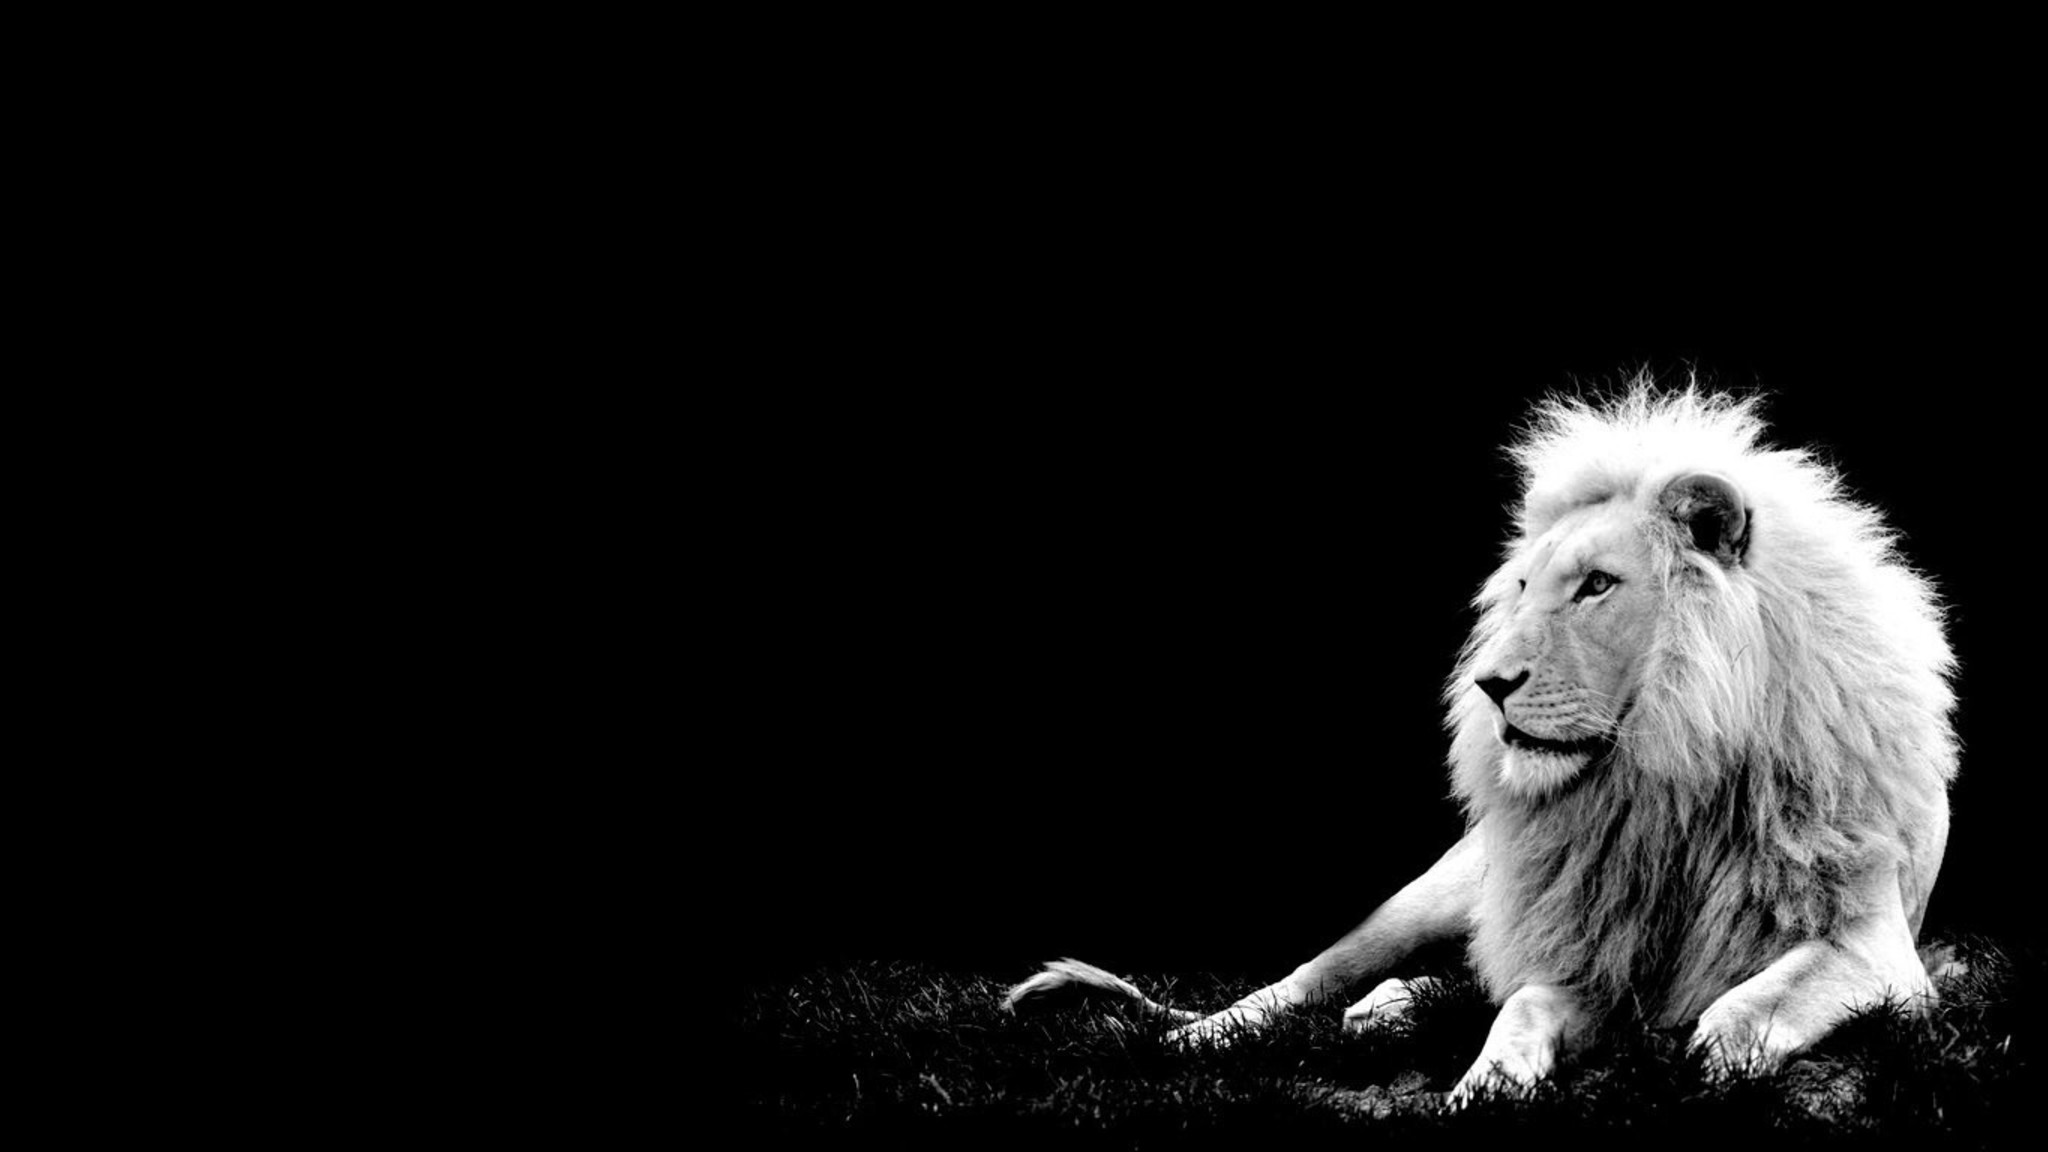 10 Latest Cool Wallpapers Of Animals Full Hd 1080p For Pc: Black And White Wallpaper